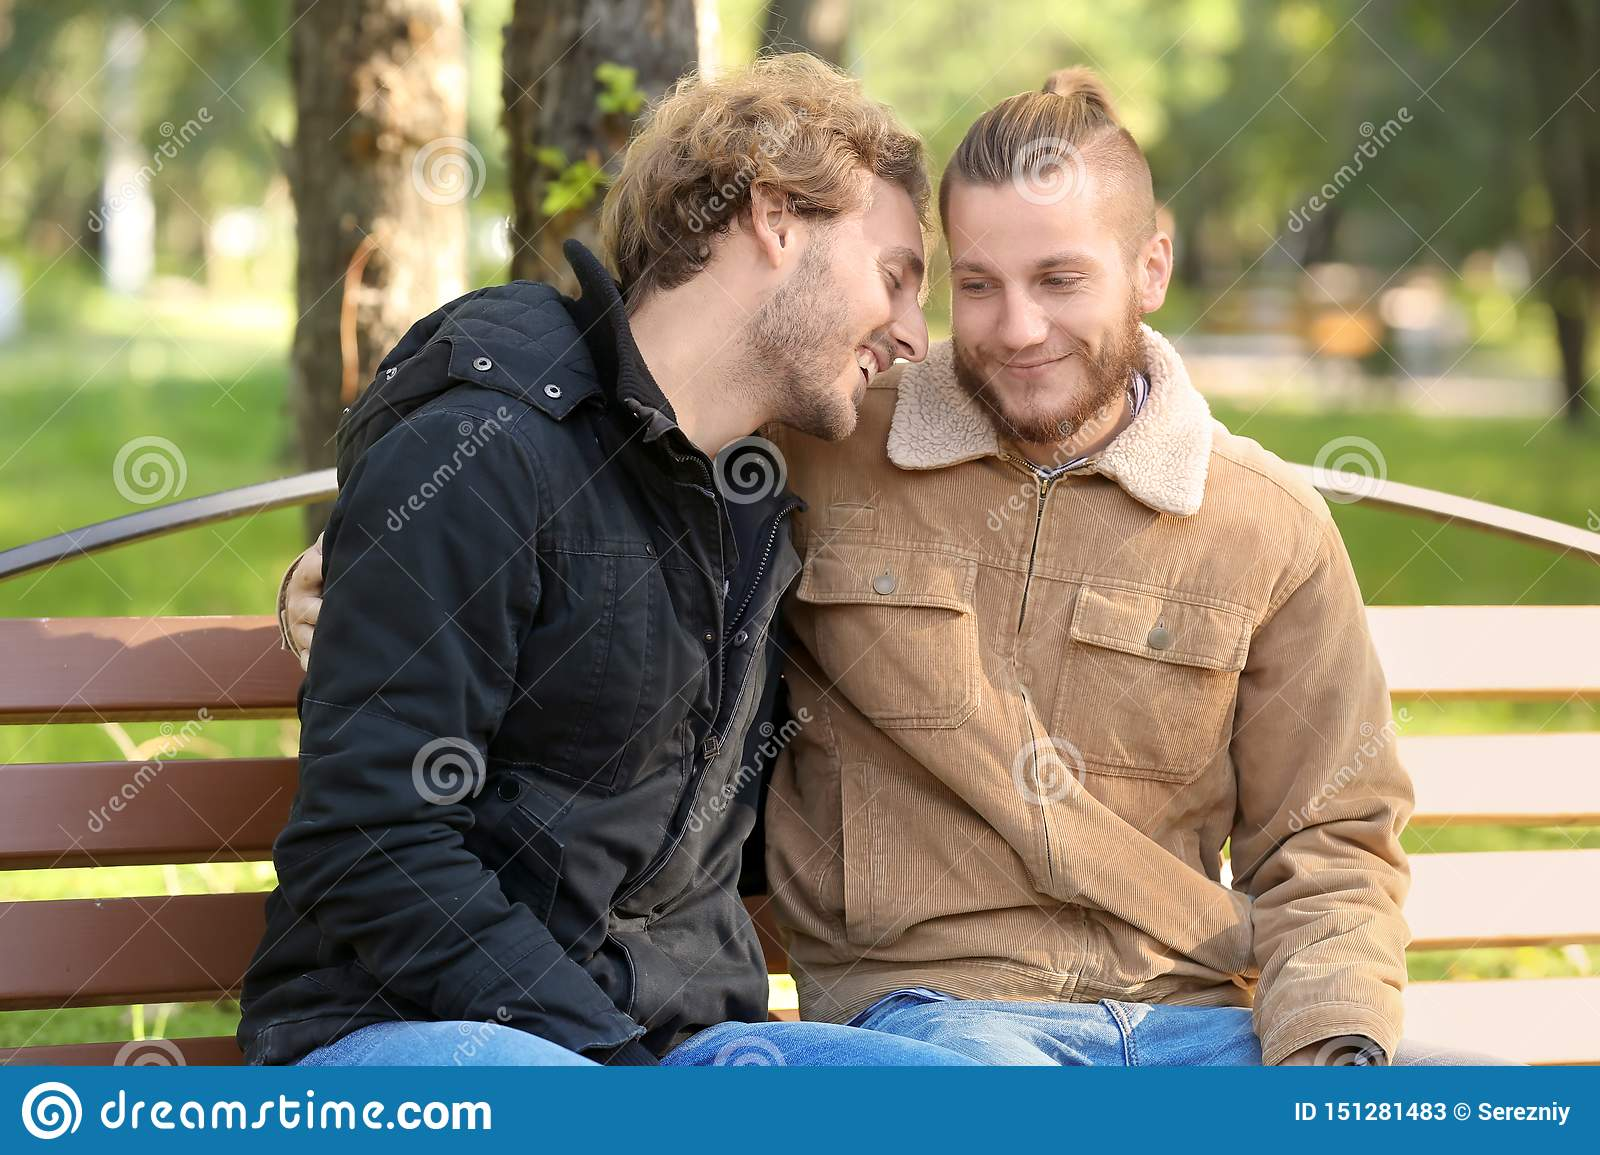 Happy Gay Couple Resting In Park Stock Image - Image of